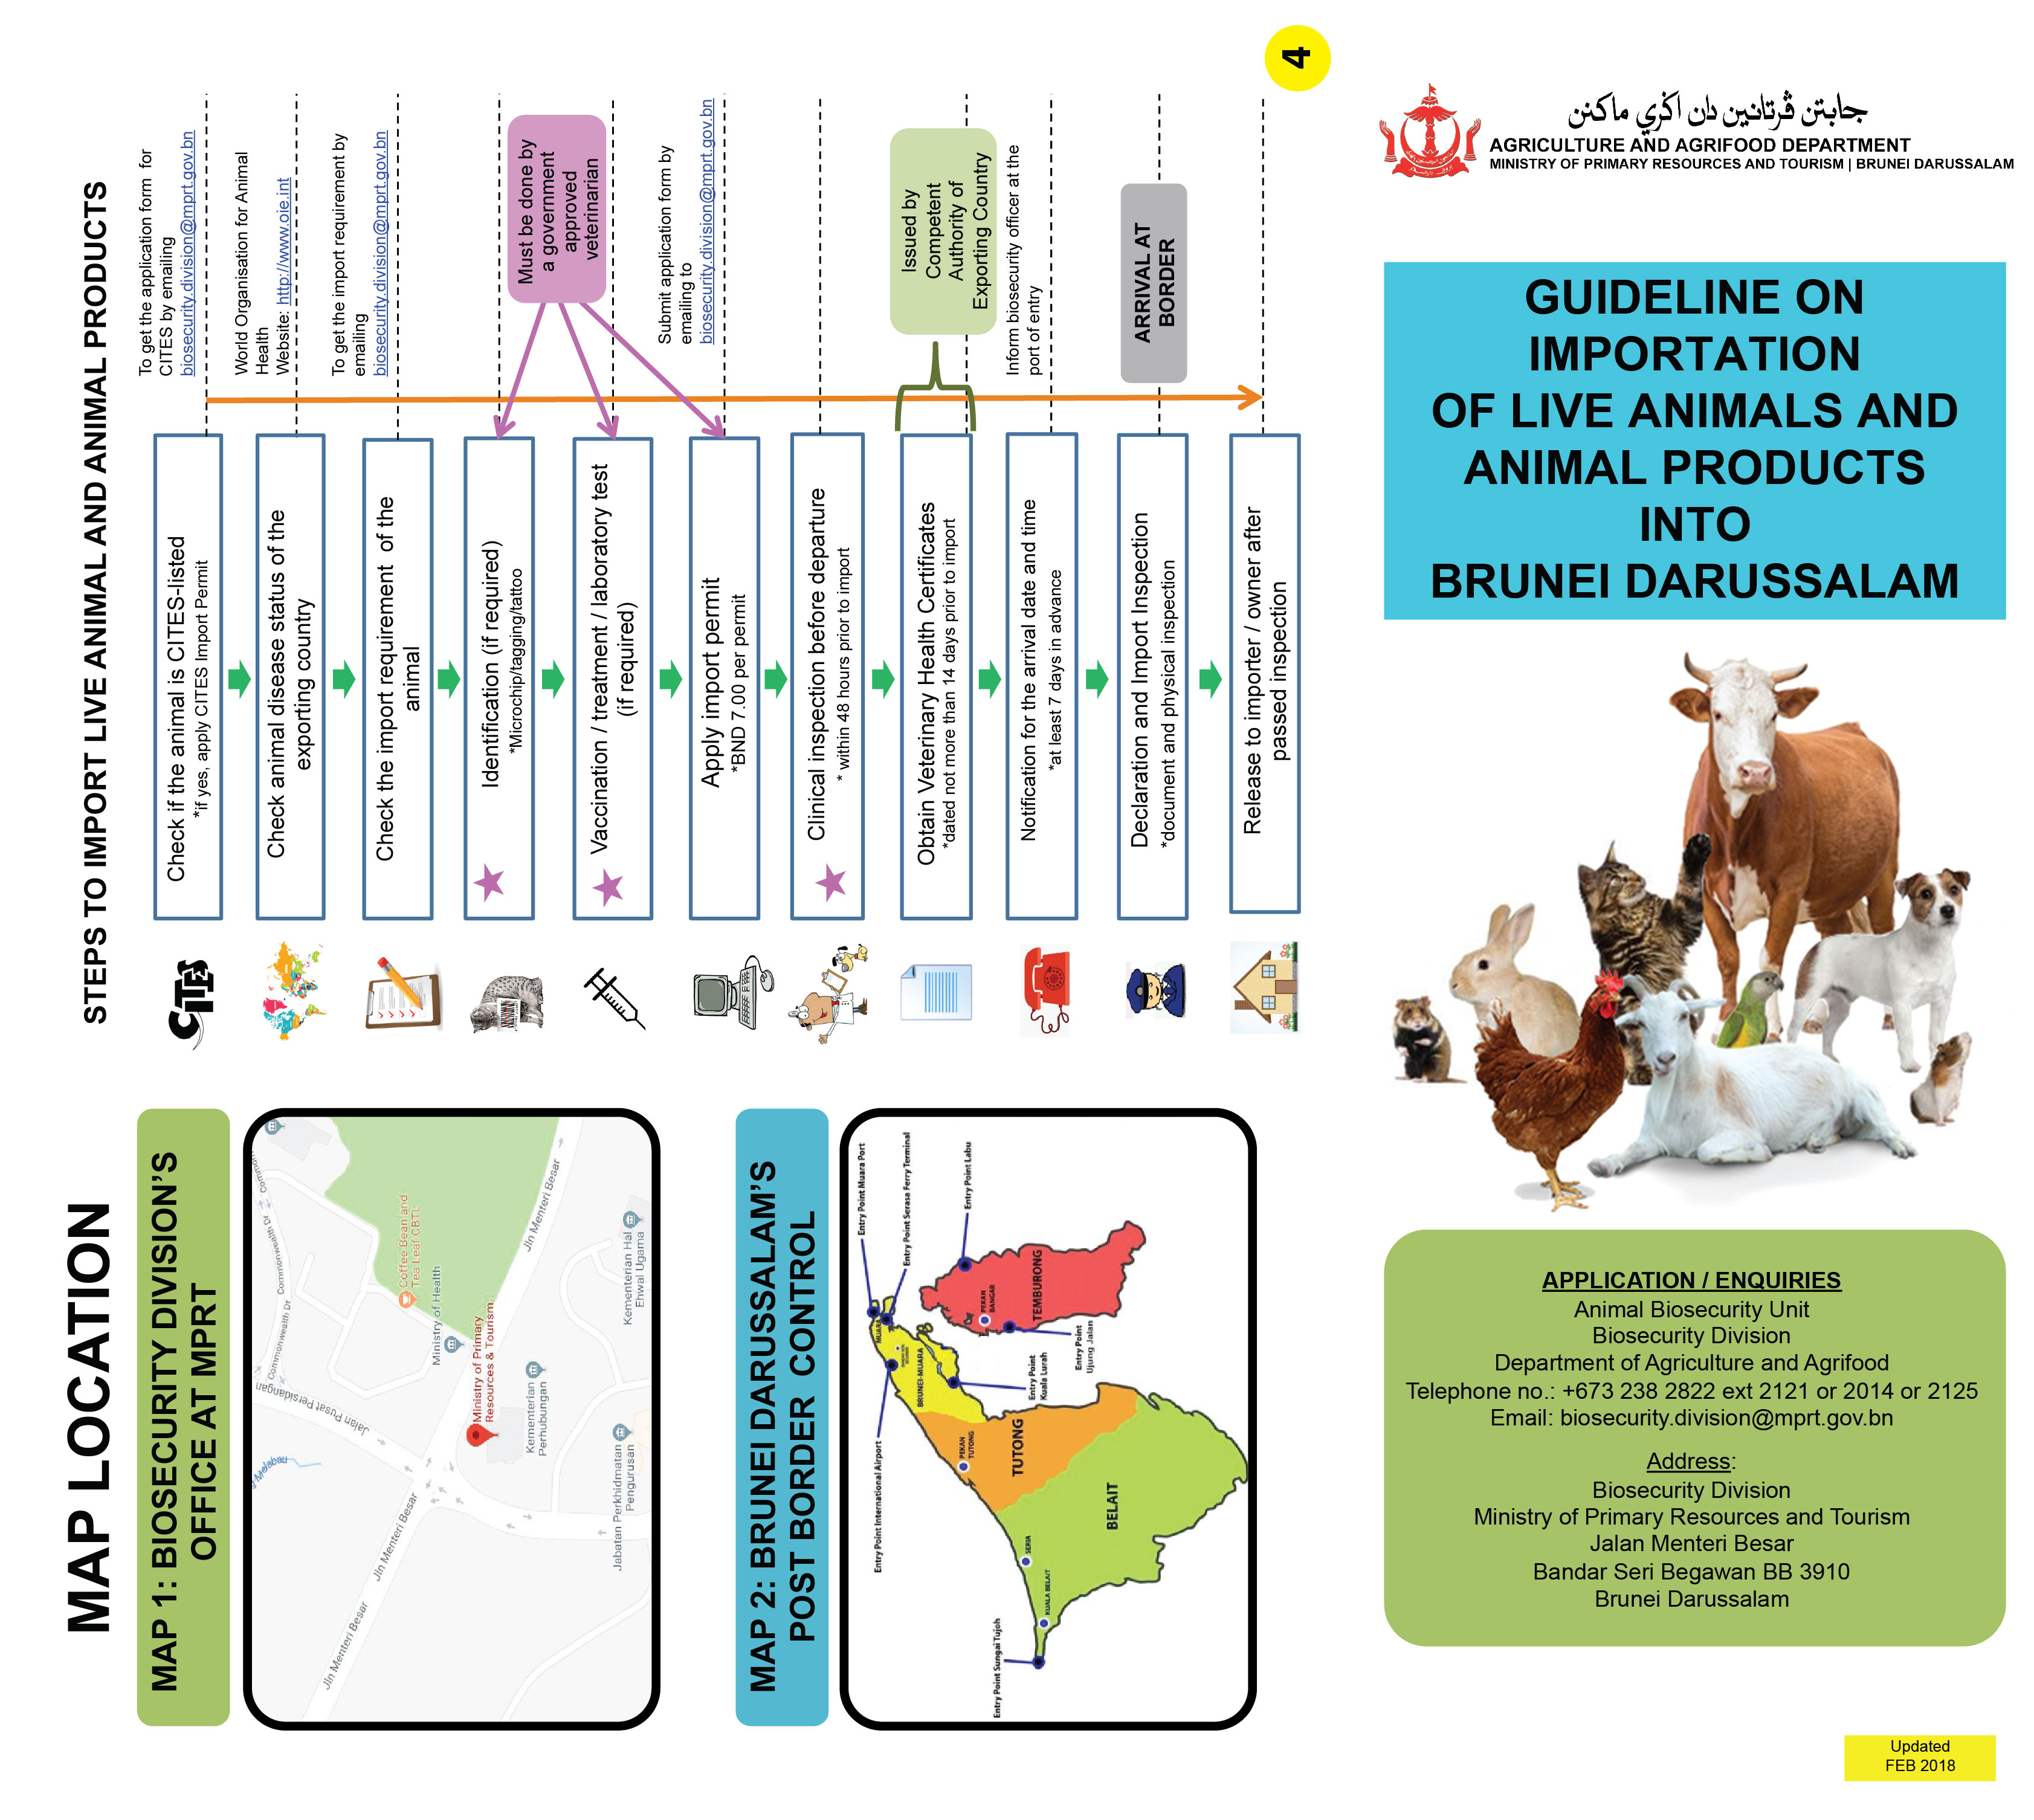 Agriculture and Agrifood Department - IMPORTATION OF CATS